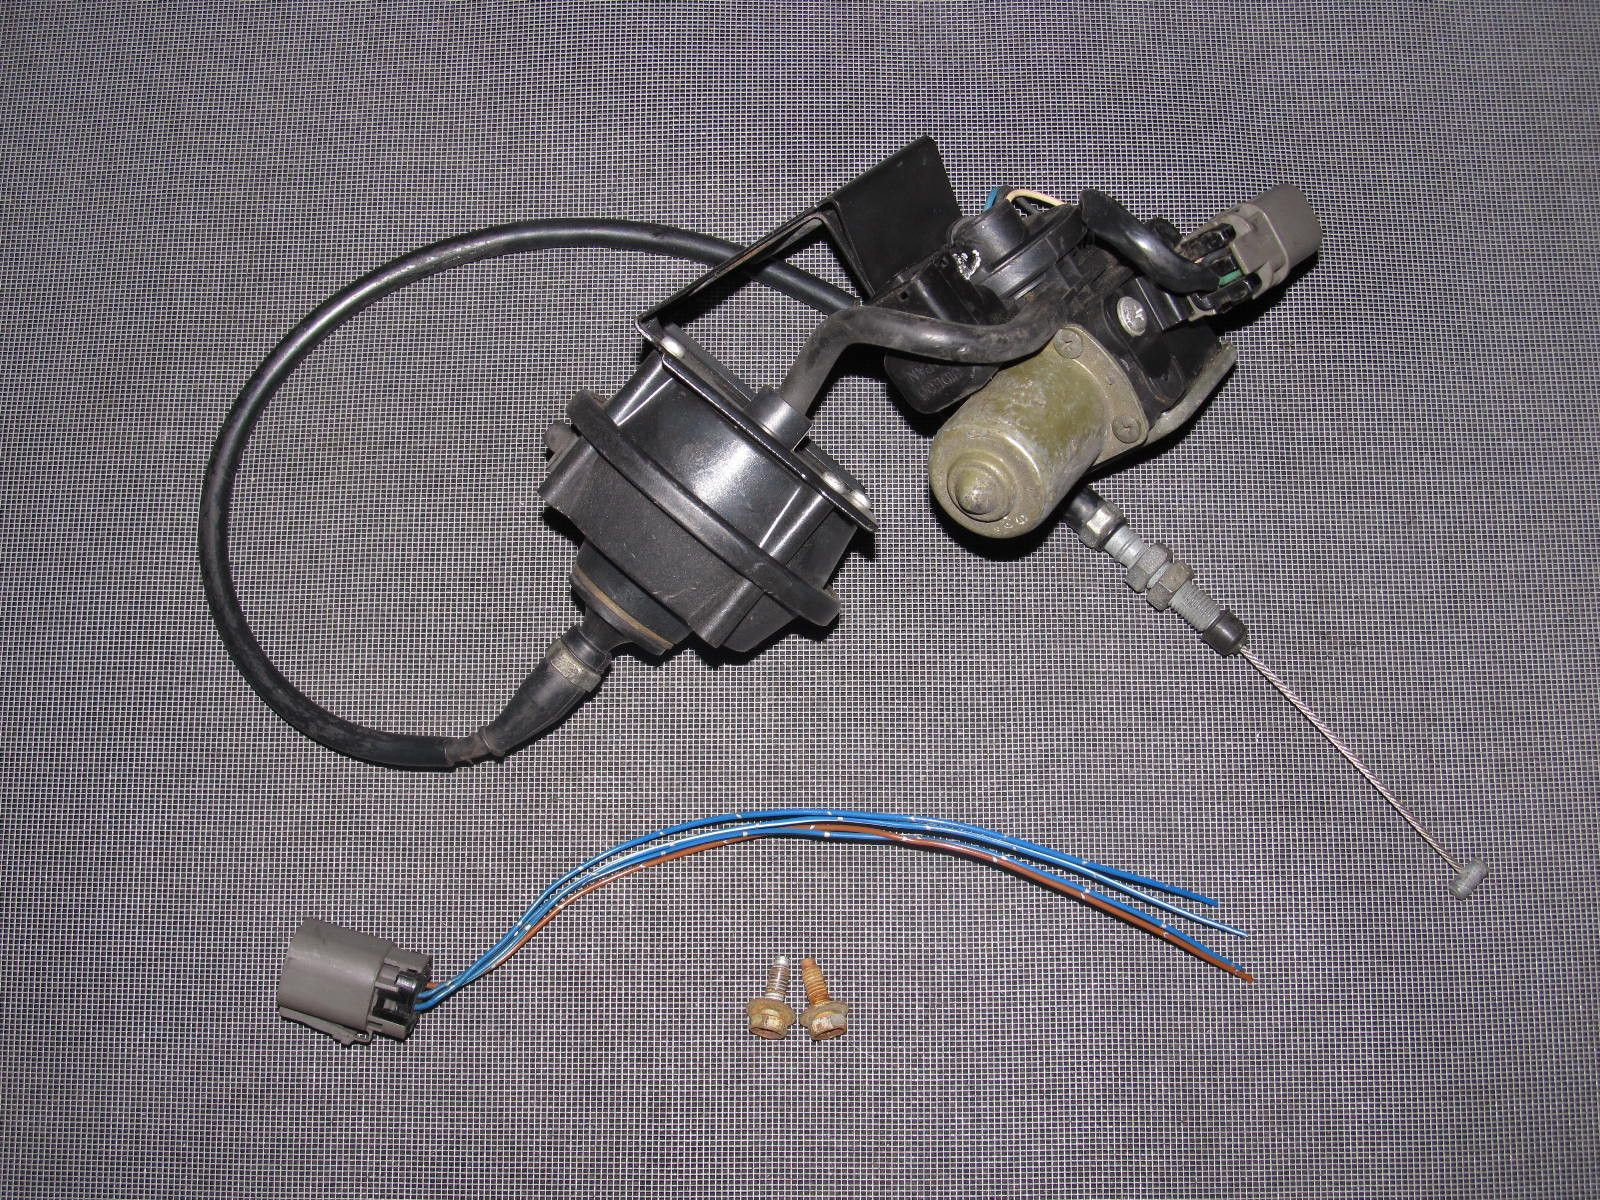 9096 Nissan 300zx Cruise Control Motor Actuator & Cable